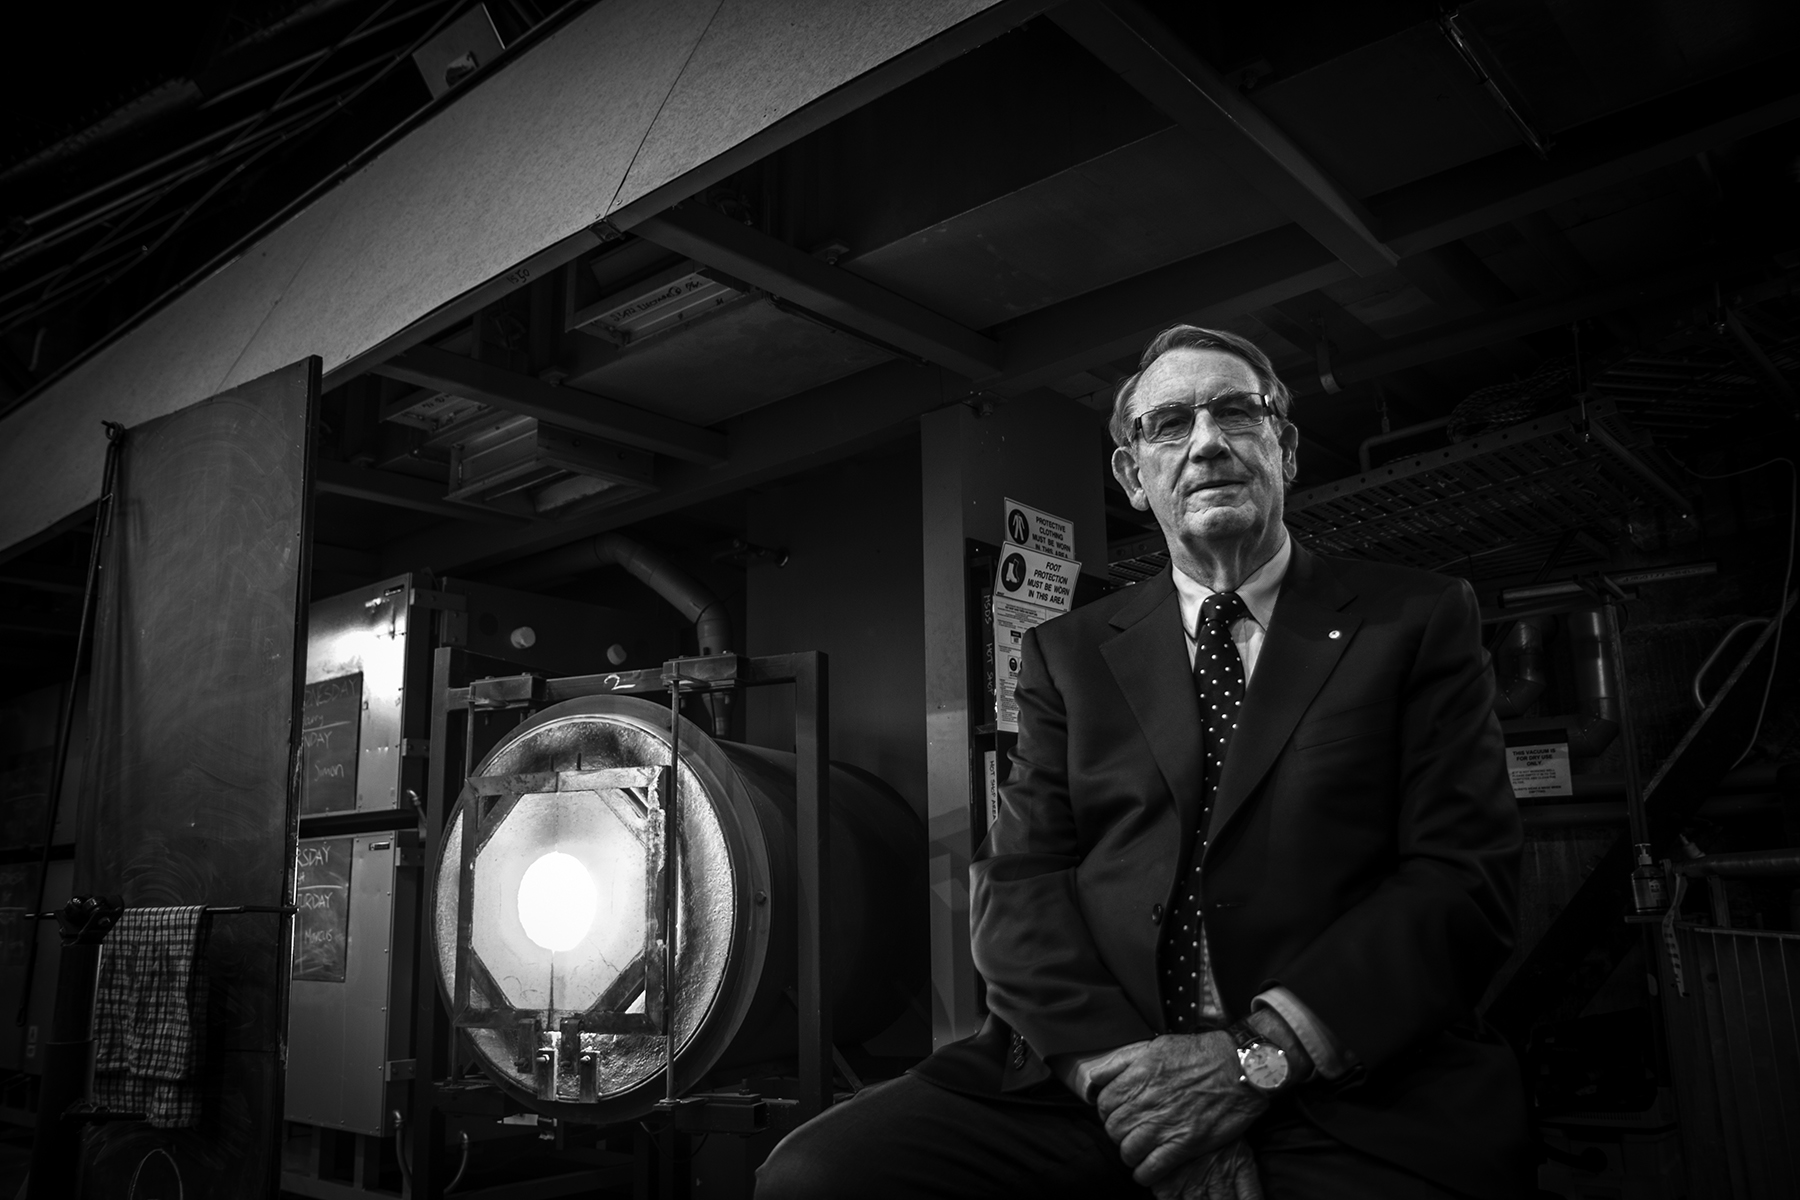 John Hindmarsh, Canberra arts patron and Executive Chairman of Major Sponsors, Hindmarsh, on the floor of Canberra Glassworks hotshop on the eve of it's launch in 2016.